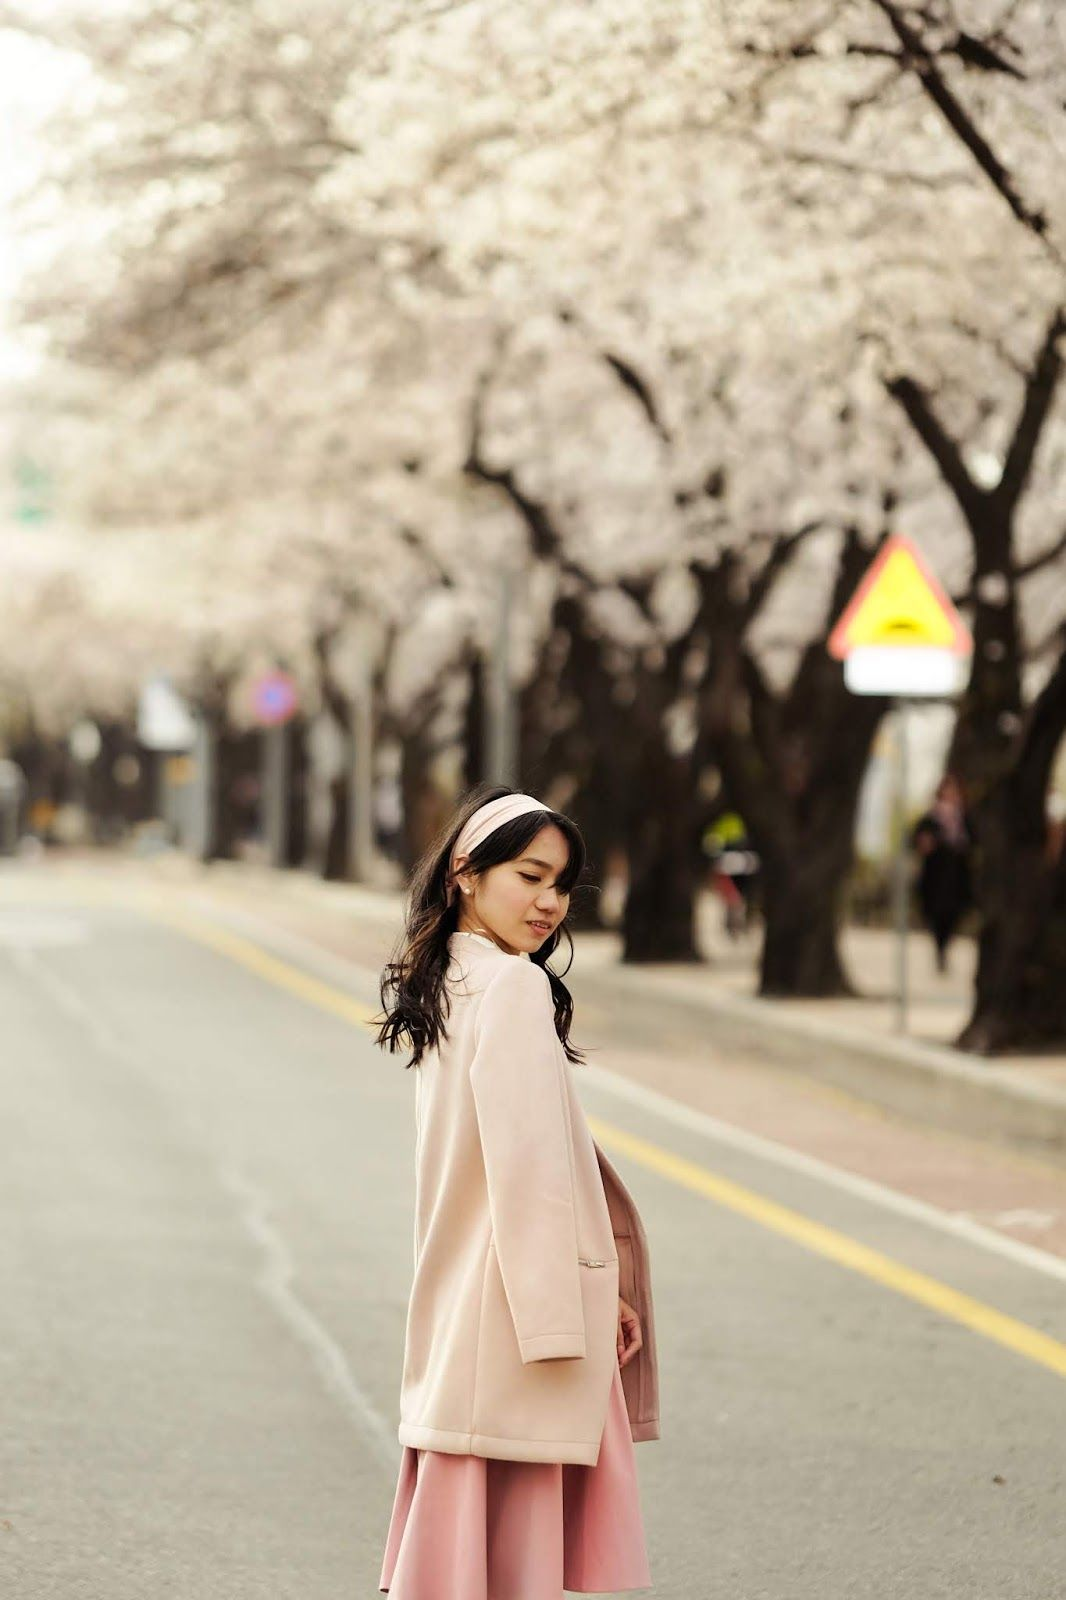 Seoul Travel Guide: Best Spring Destinations in Seoul, Korea - The